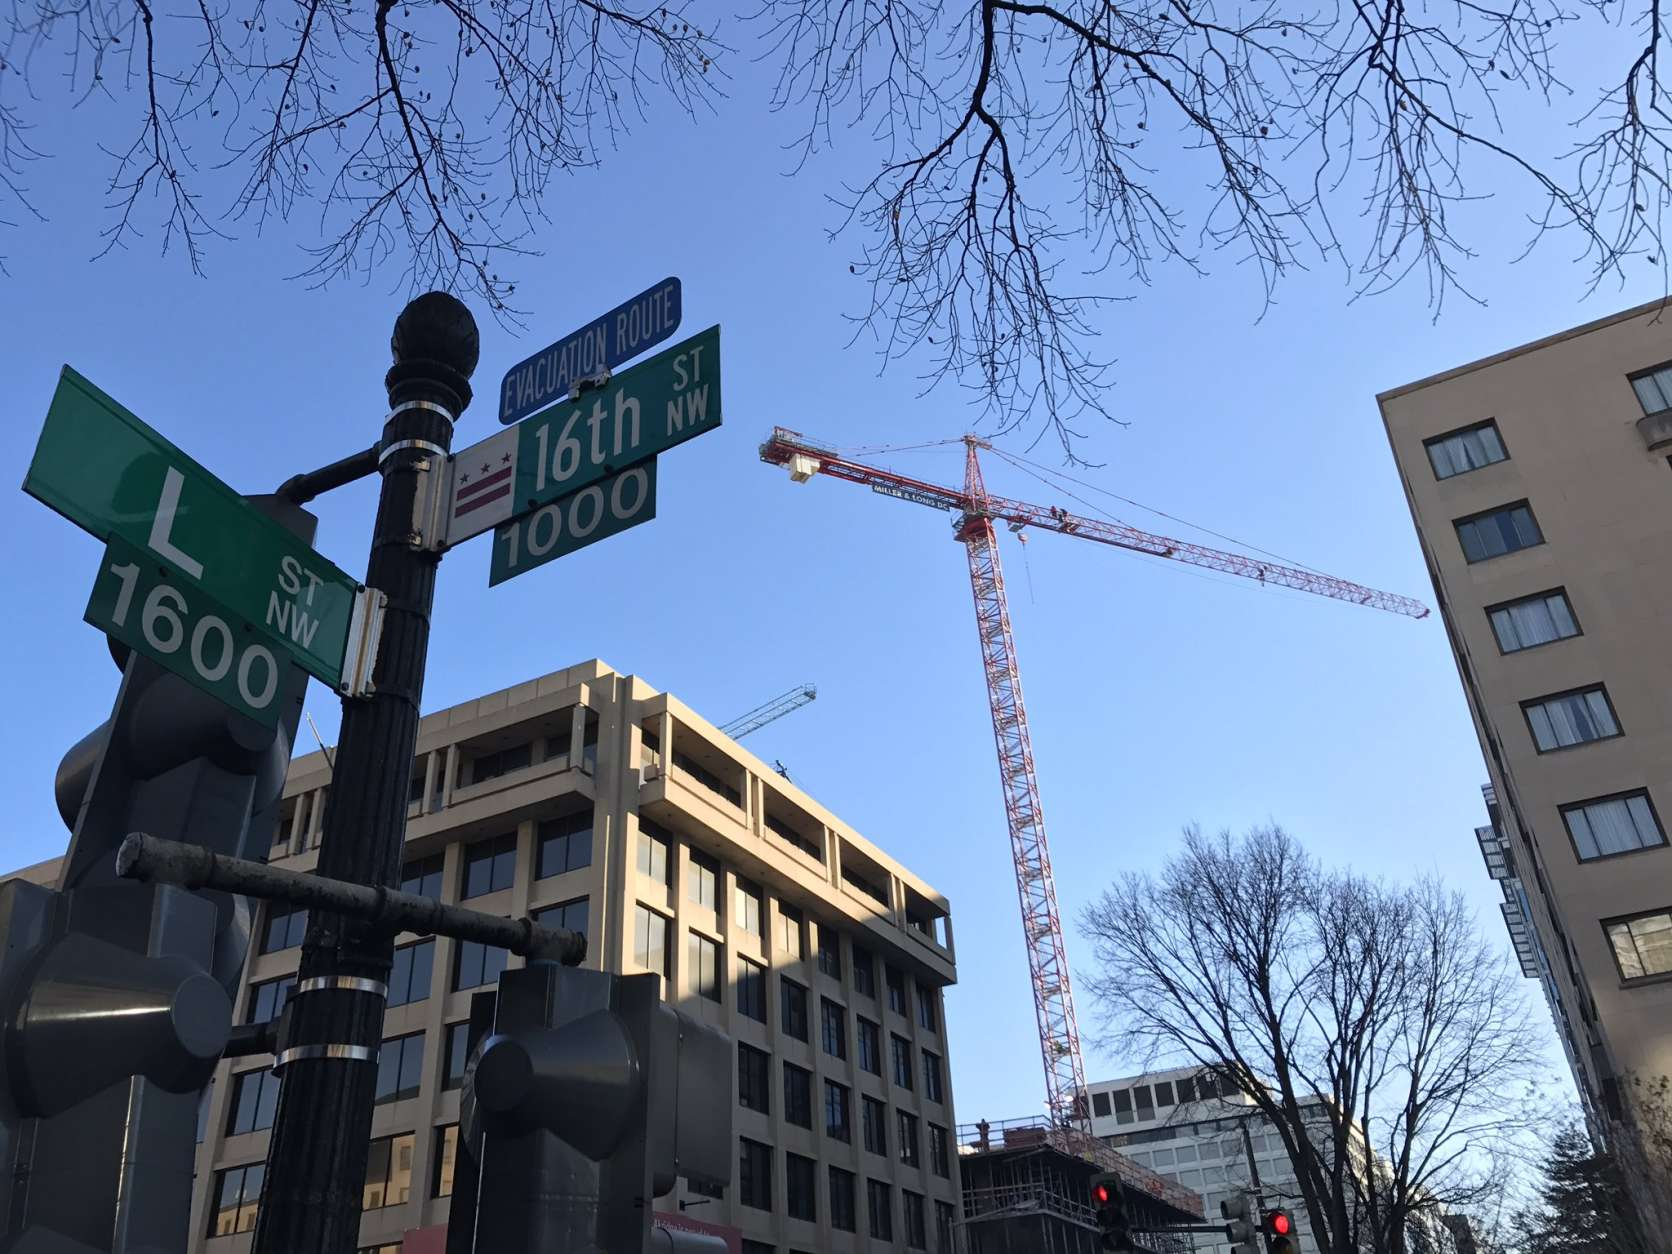 Protesters on a crane in downtown D.C. Wednesday. (WTOP/Neal Augenstein)